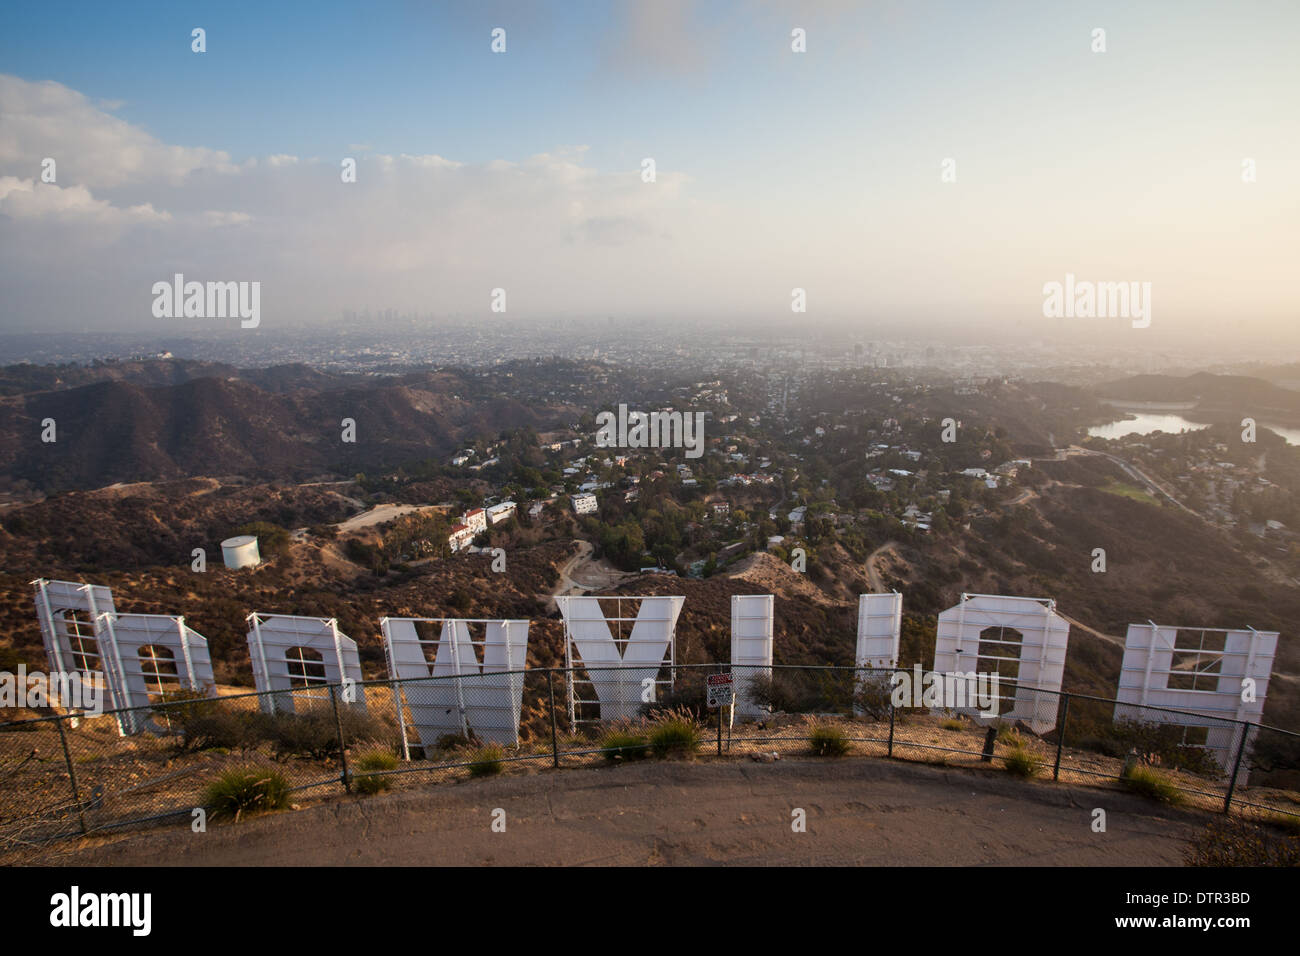 Los Angeles, USA - November 16 - The view over the Hollywood sign on November 16th 2013. - Stock Image